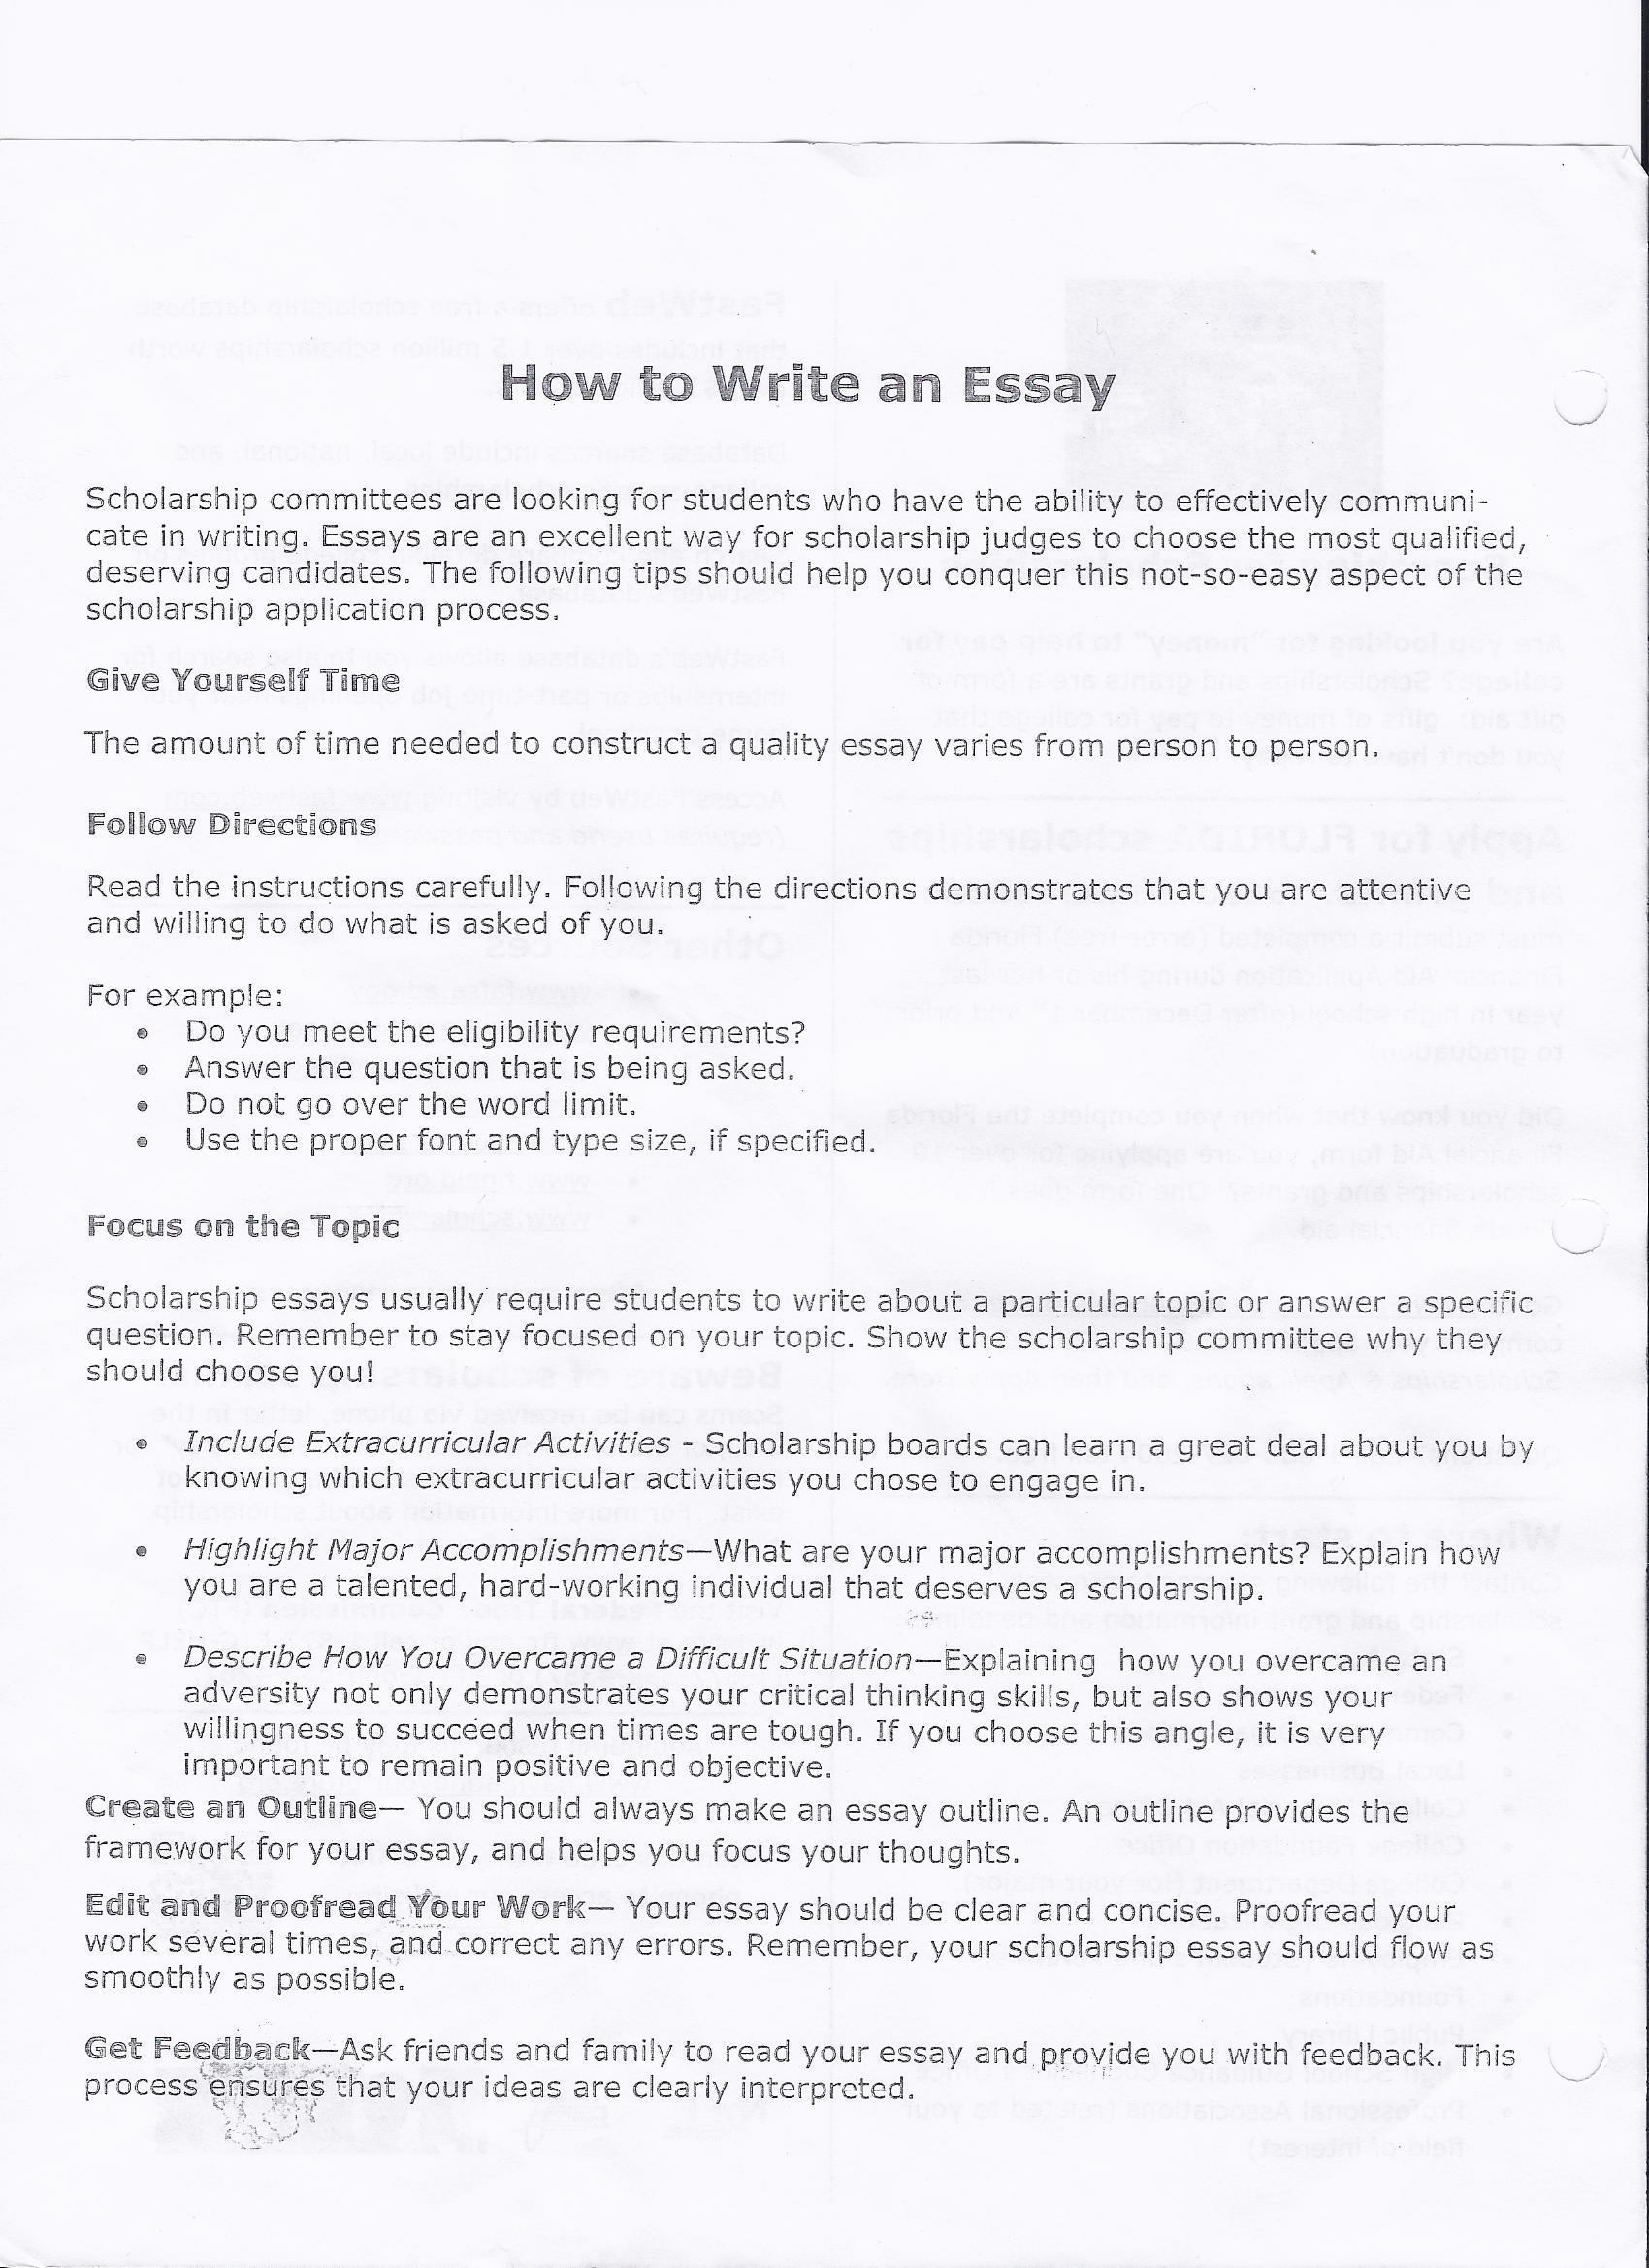 Essay writing university